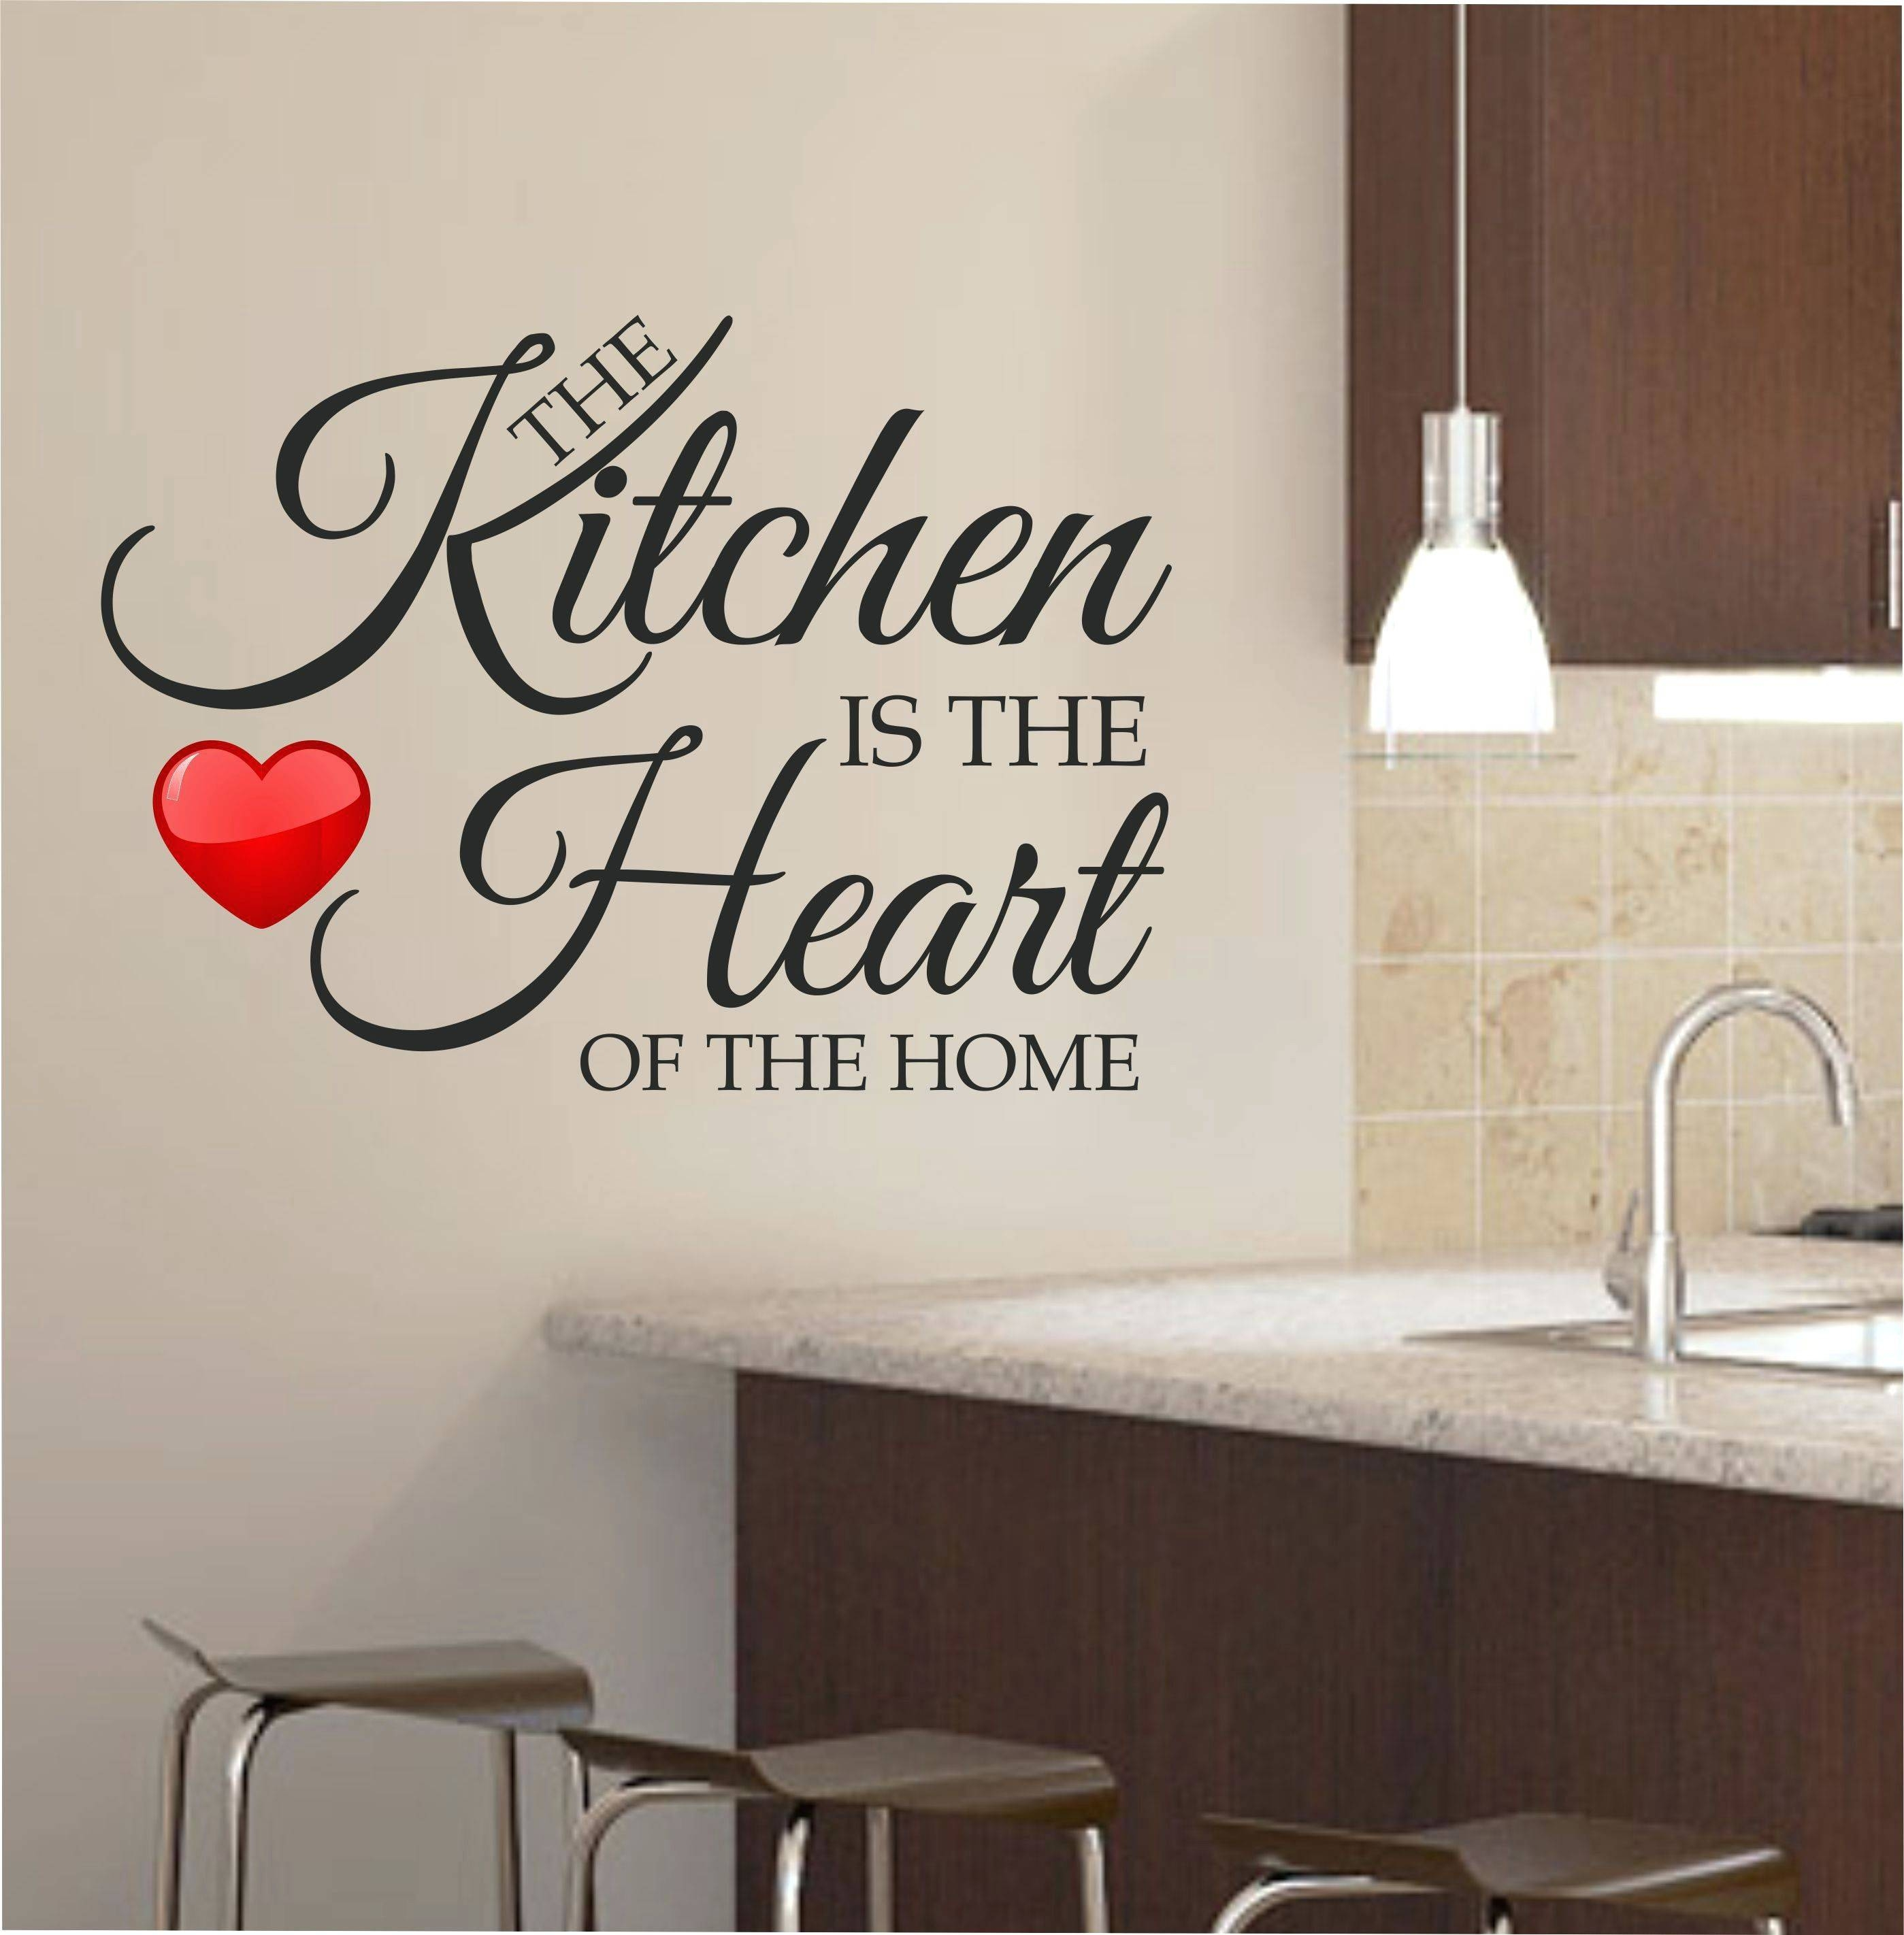 Coffee Themed Kitchen Items Best Wall Arts Kitchen Themed Metal Pertaining To Newest Kitchen Metal Wall Art (View 5 of 20)